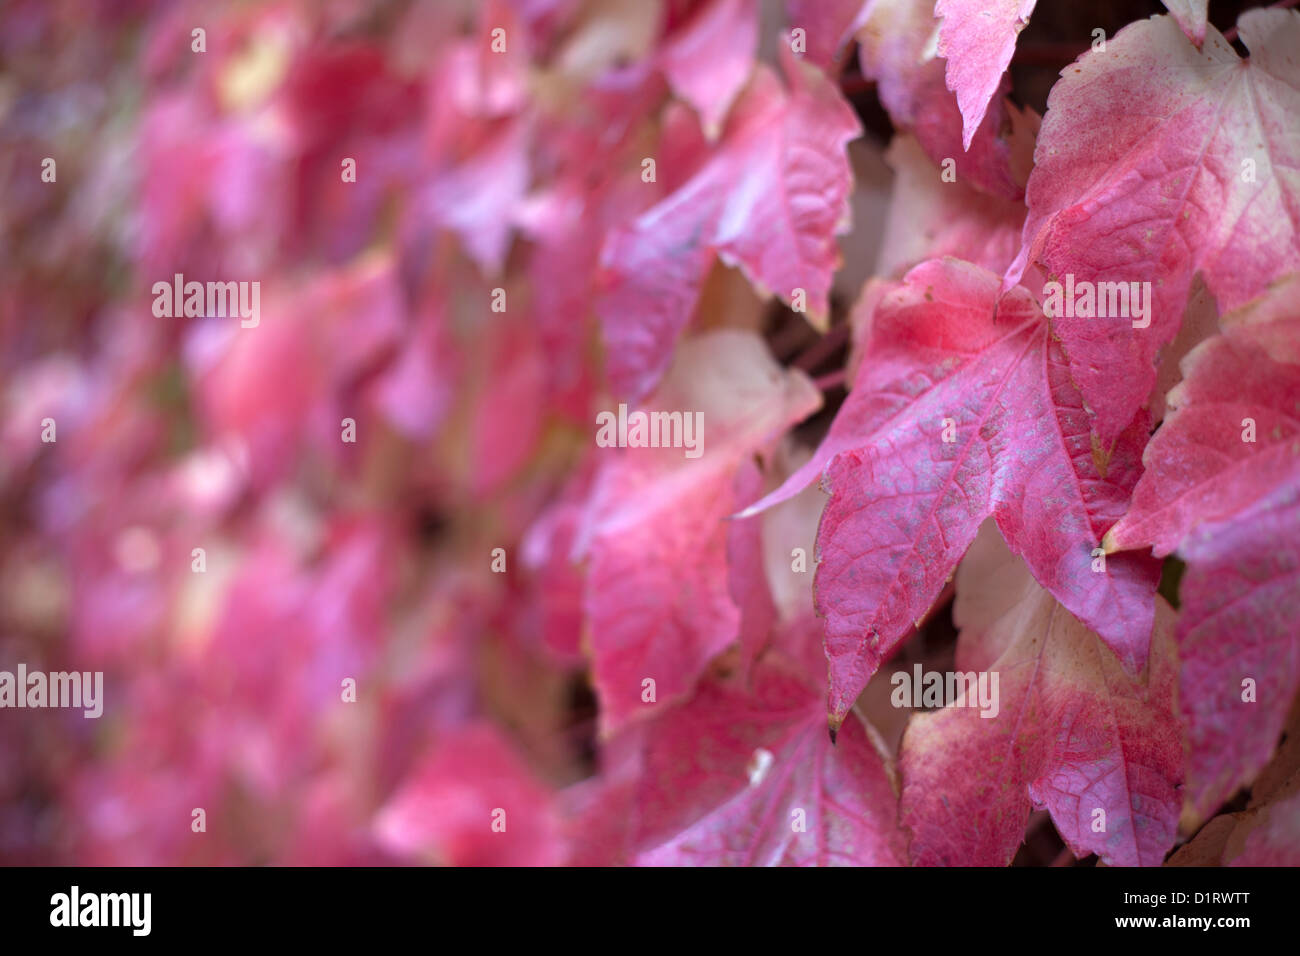 Red Virginia creeper leaves - Stock Image